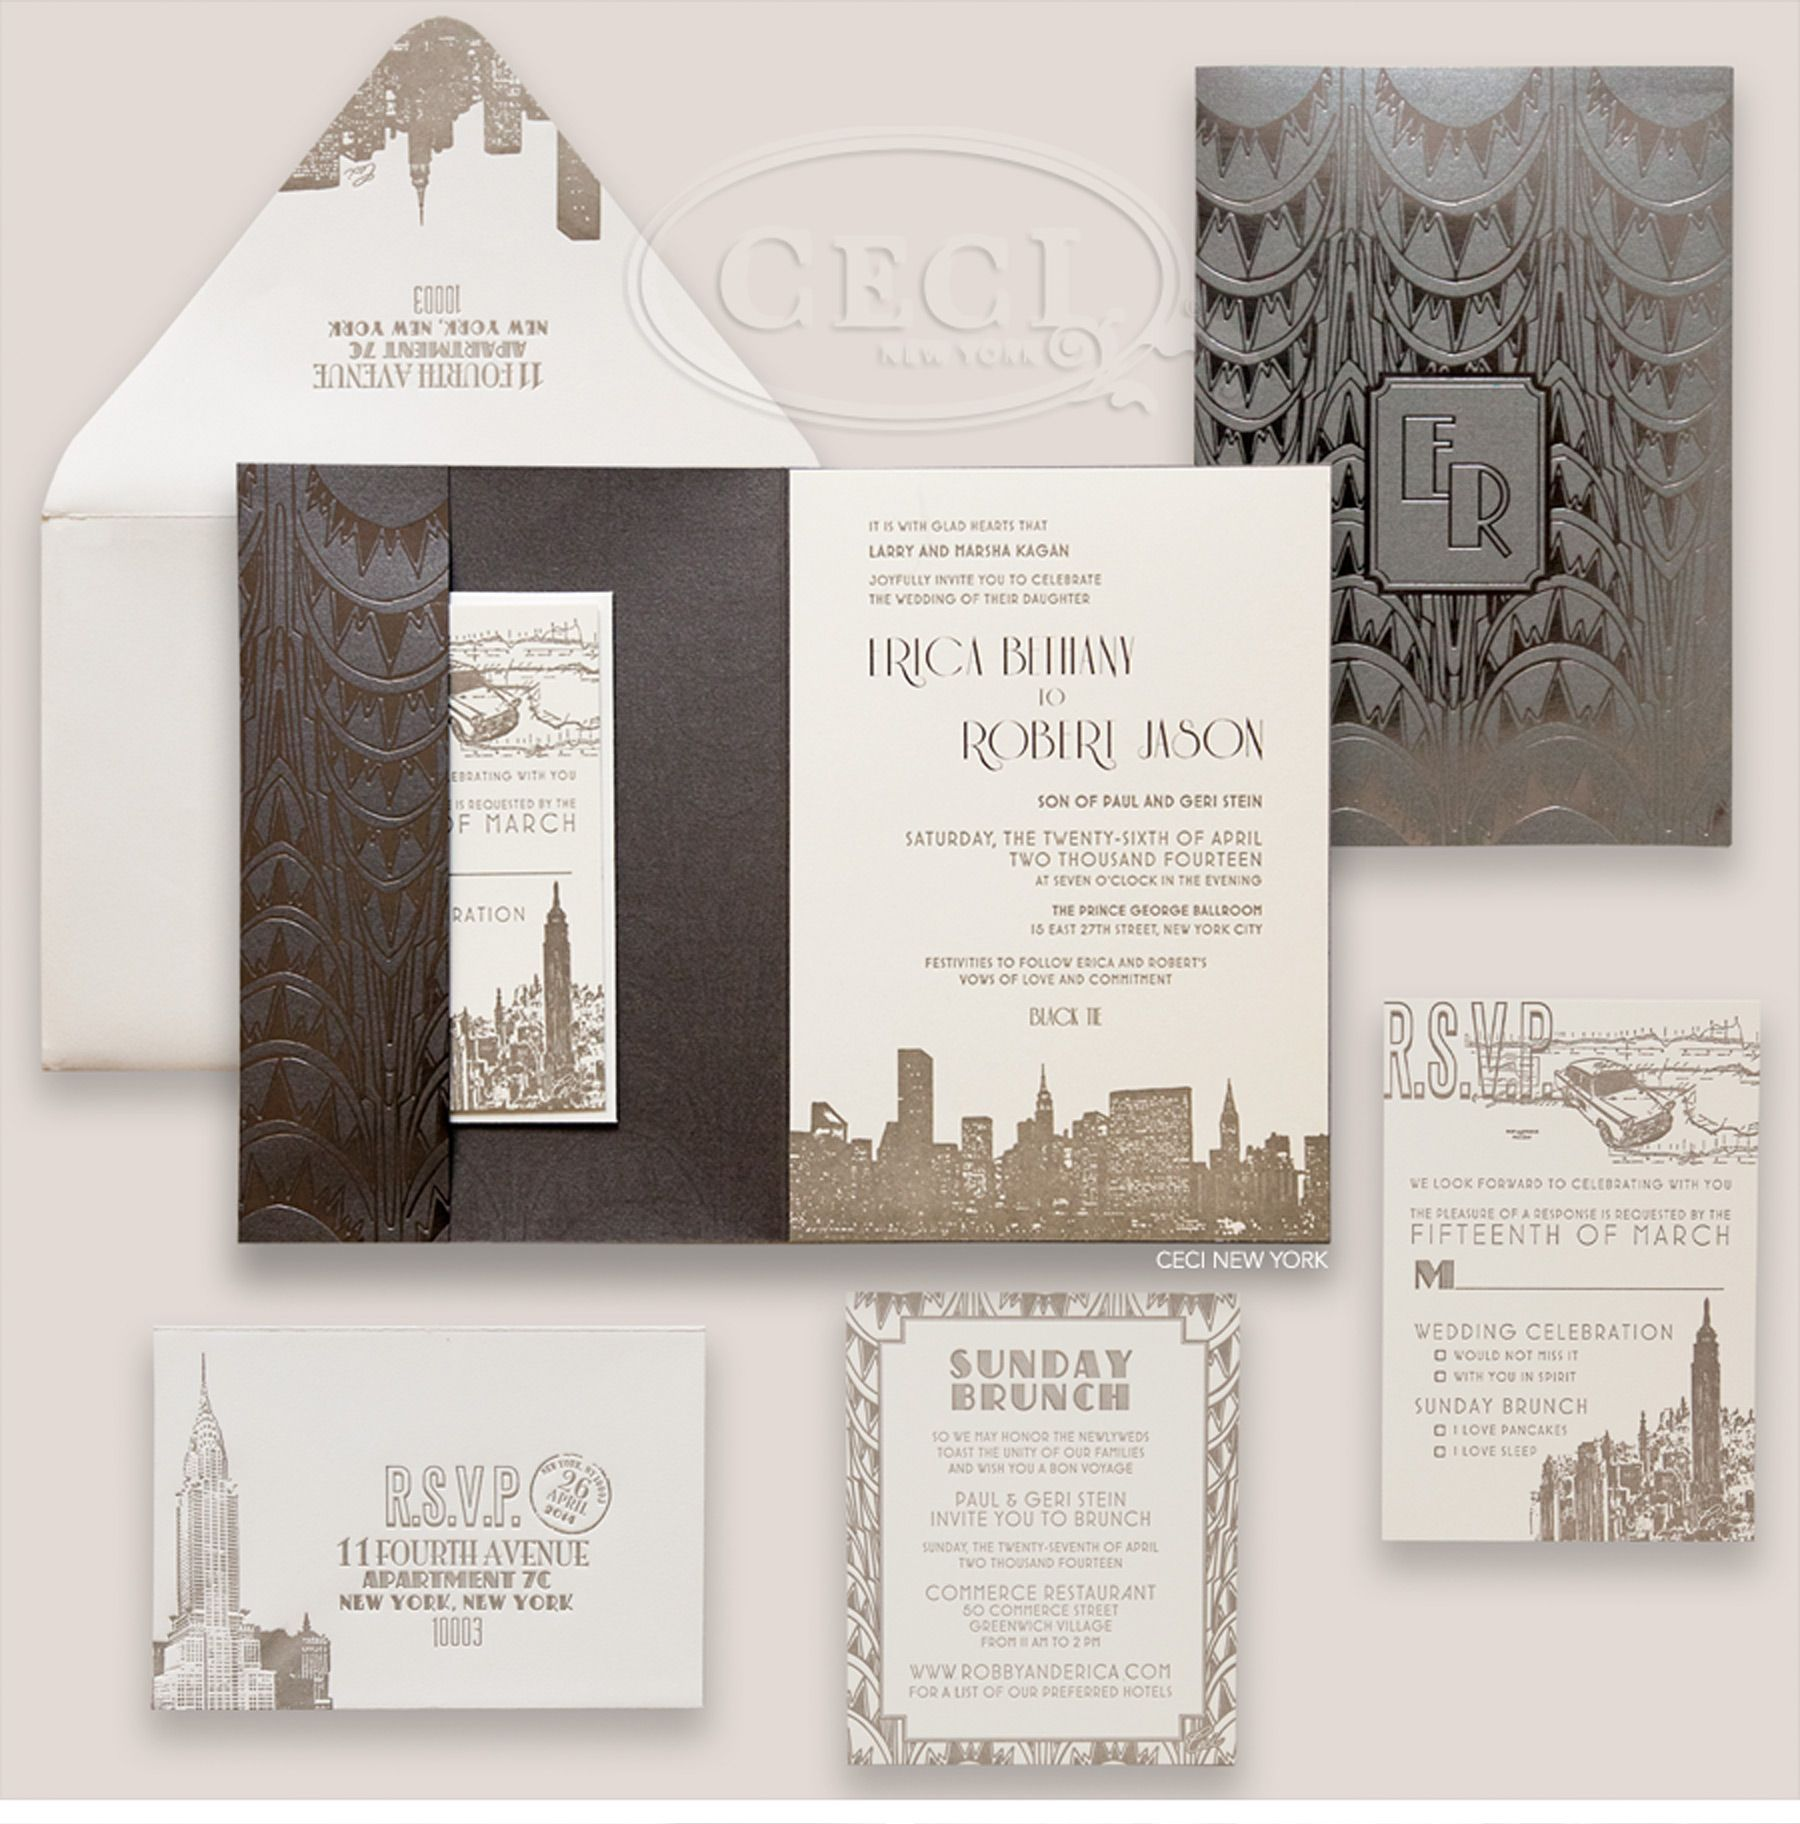 Luxury wedding invitations by ceci new york our muse charming luxury wedding invitations by ceci new york our muse charming new york city hall stopboris Choice Image